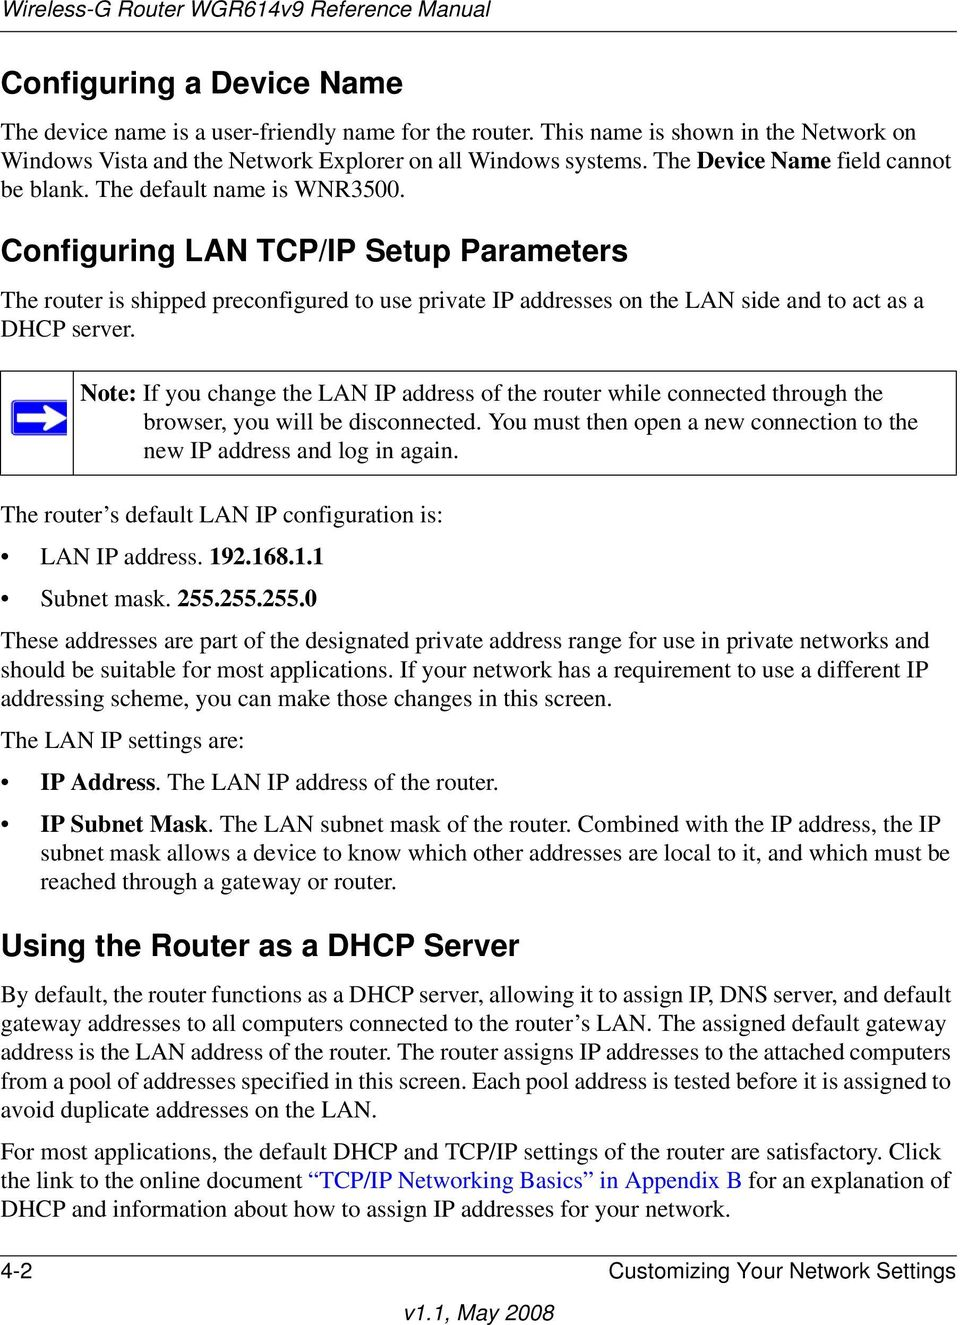 Configuring LAN TCP/IP Setup Parameters The router is shipped preconfigured to use private IP addresses on the LAN side and to act as a DHCP server.